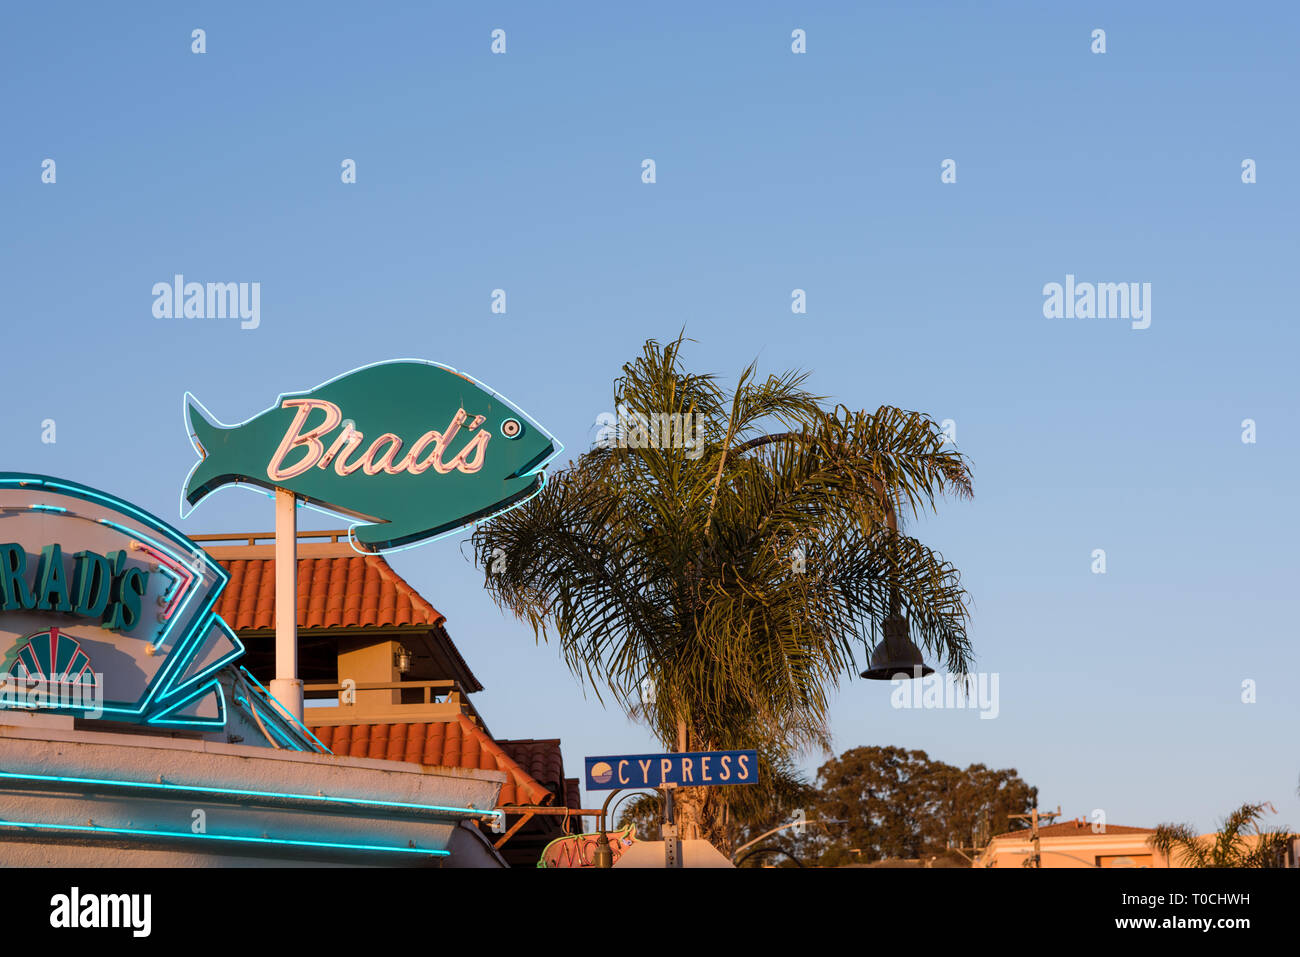 Brad S Seafood Restaurant In Pismo Beach Near The Famous Pismo Pier Stock Photo Alamy